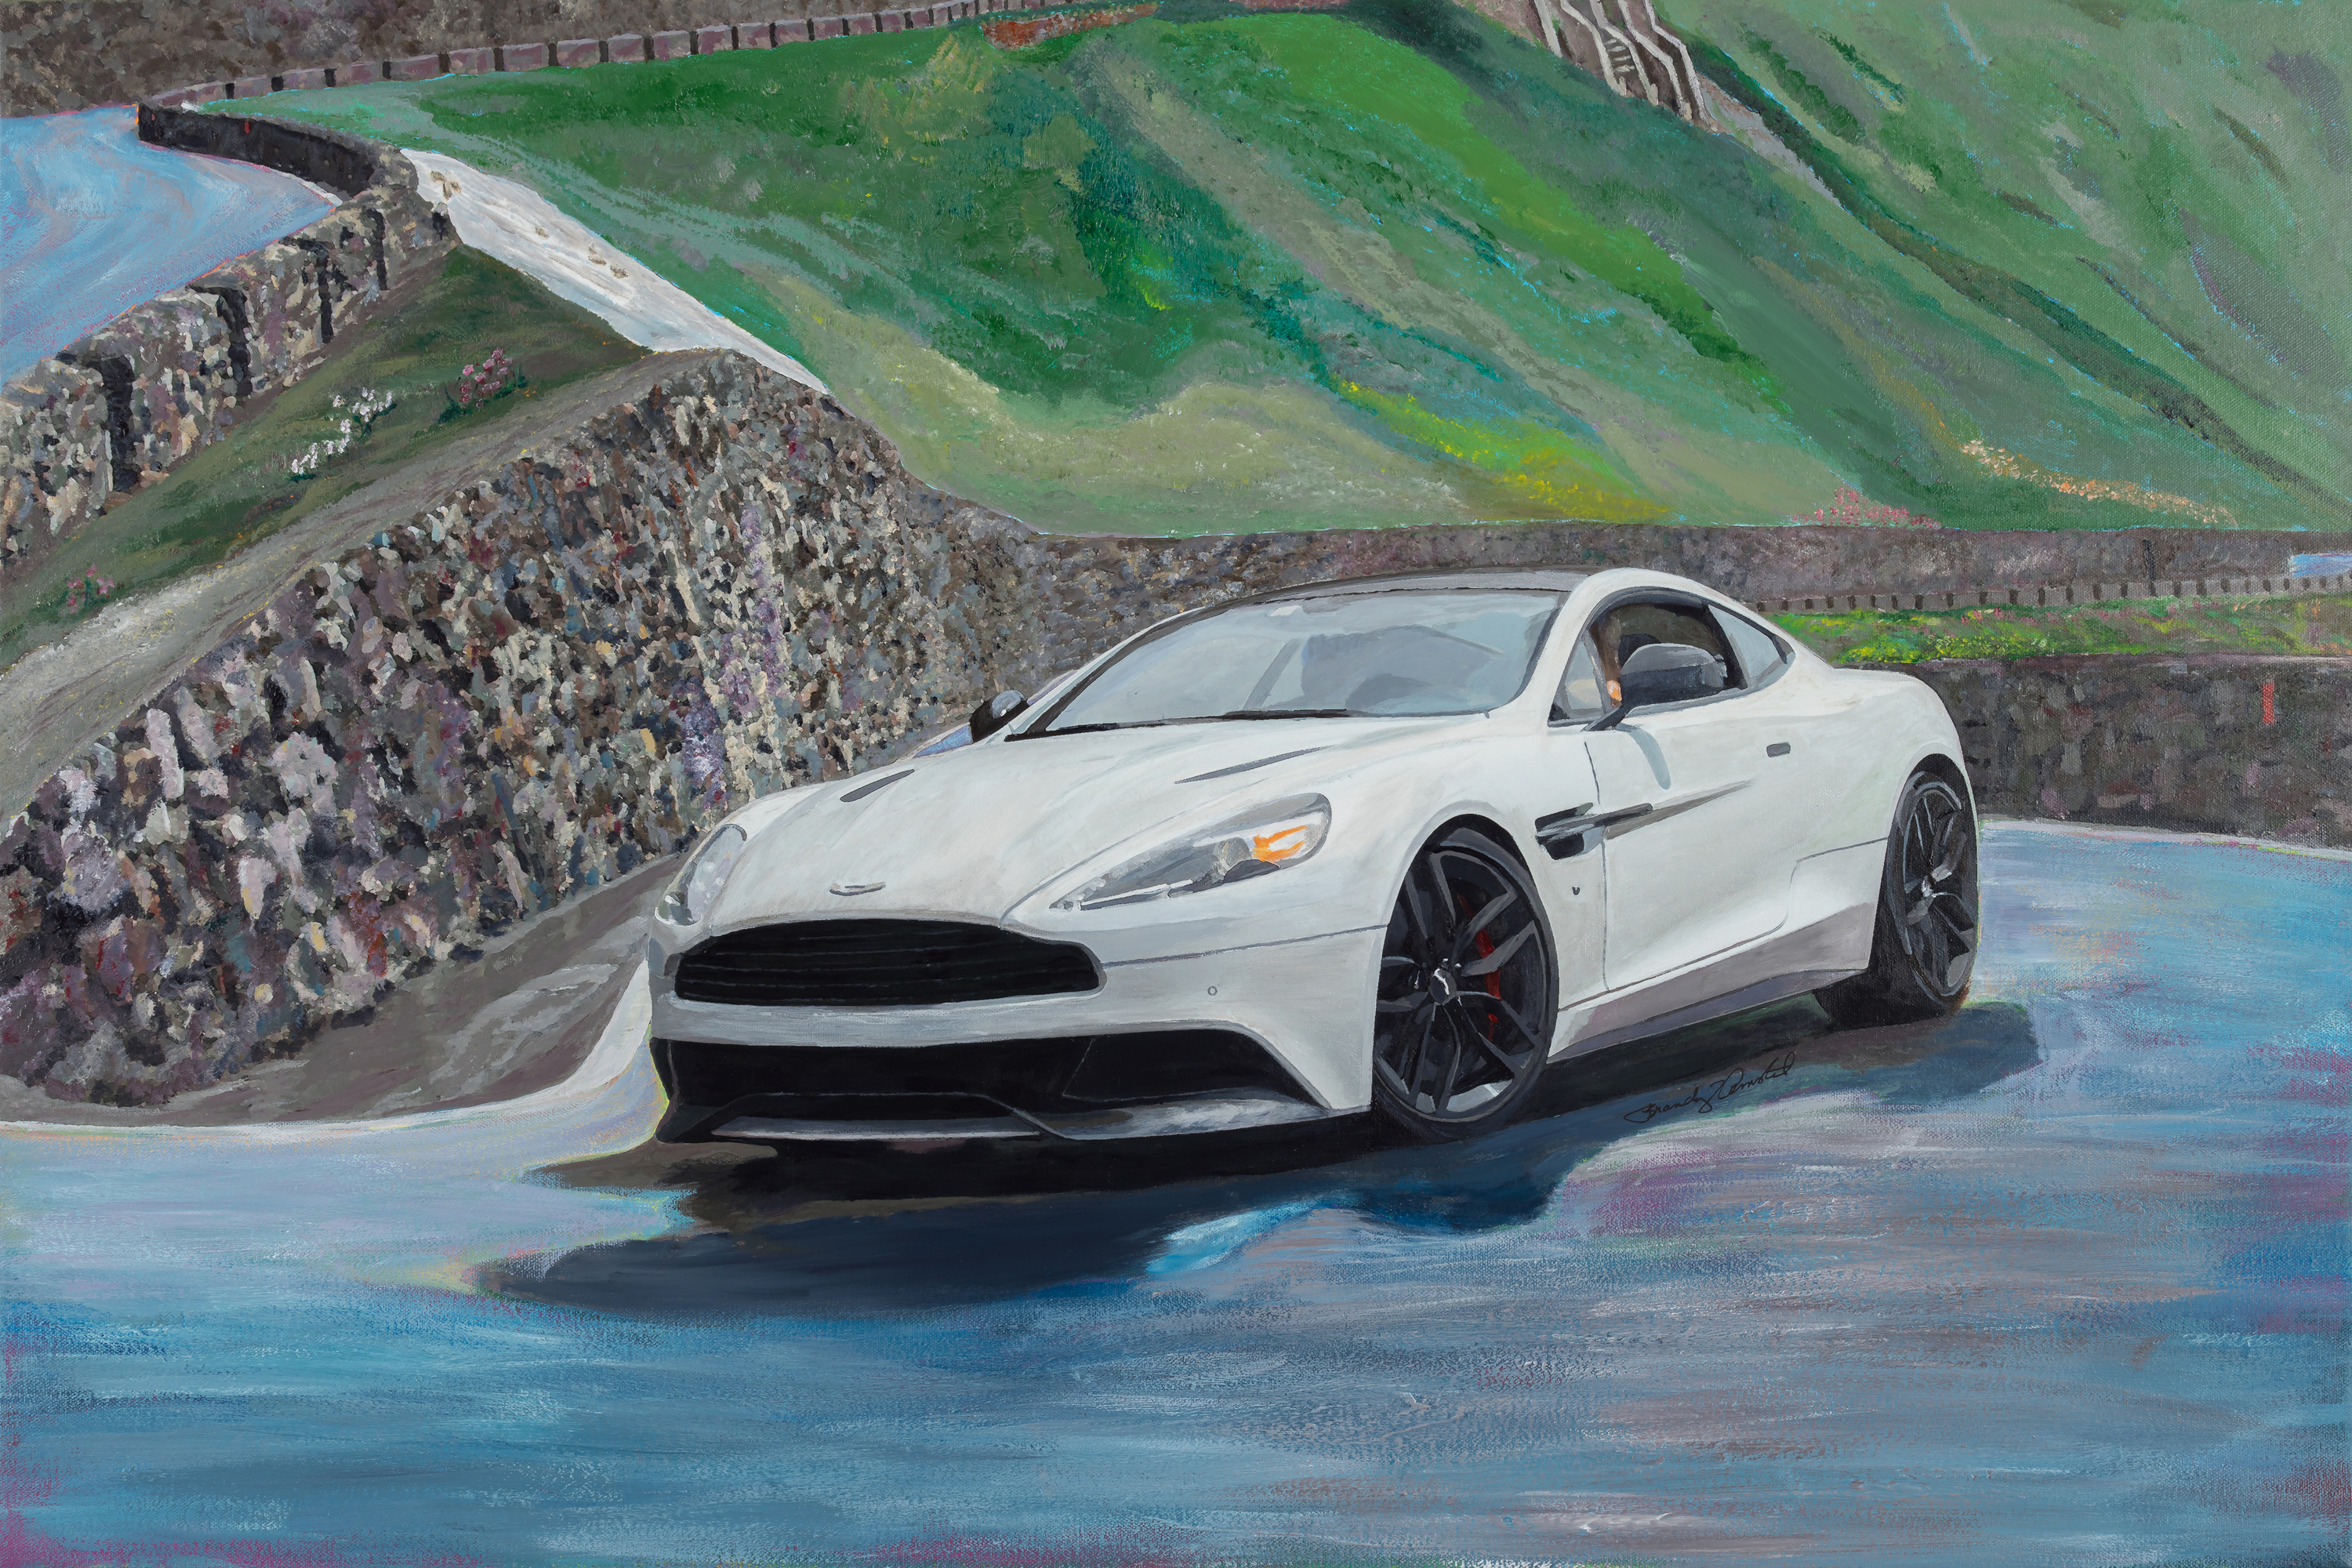 Aston martin vanquish for alastair donald highres e1kjxs